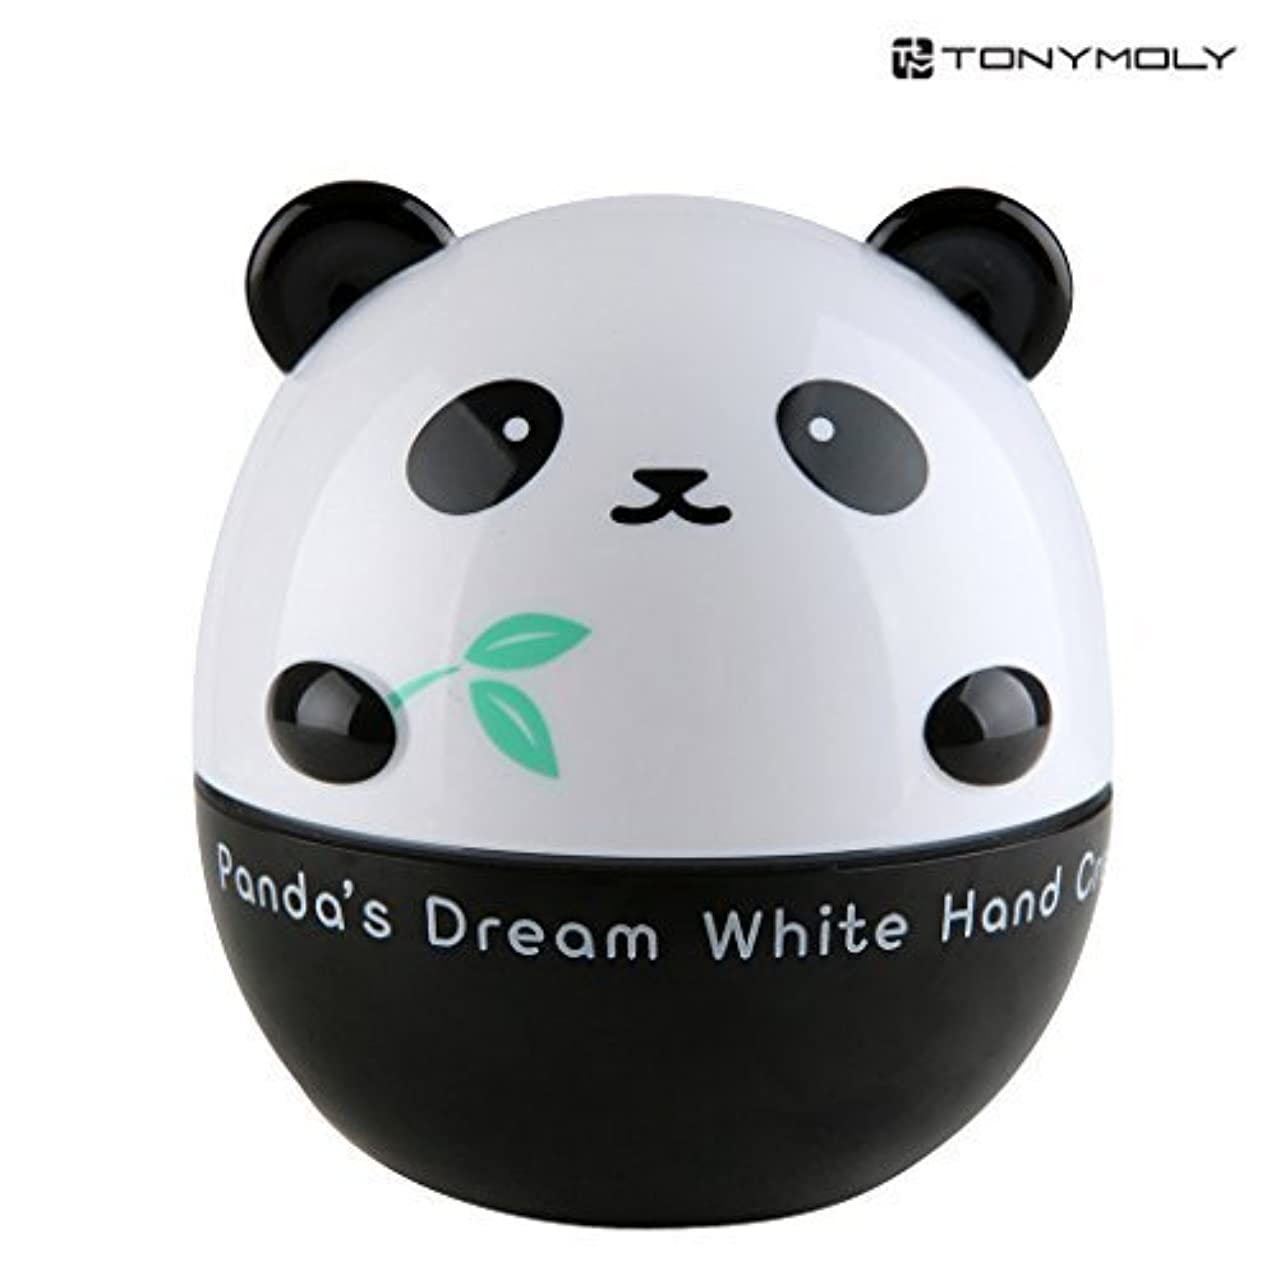 ライム断片ミニTONYMOLY Panda's Dream White Hand cream by TONYMOLY [並行輸入品]